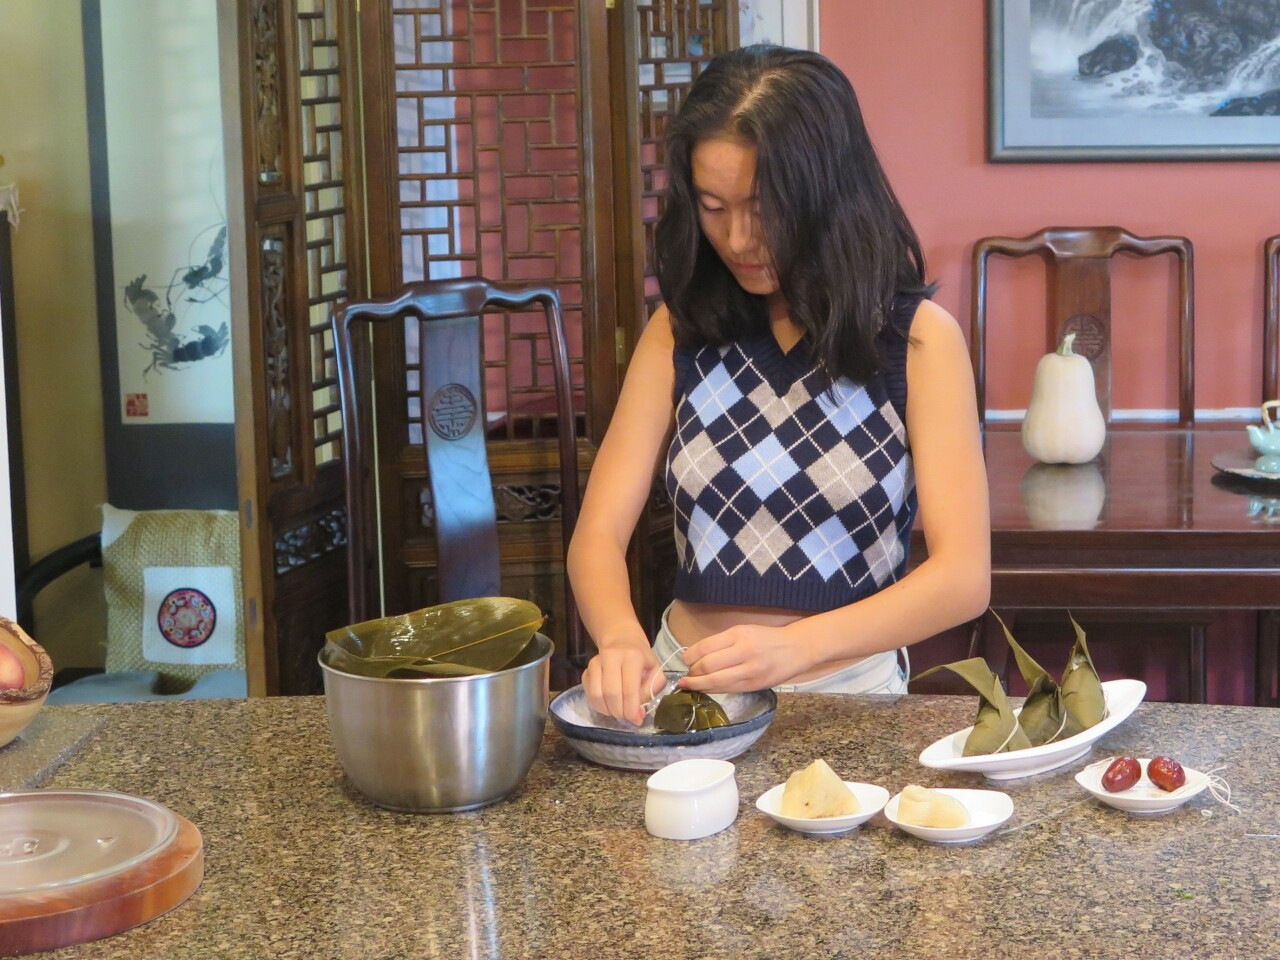 Katherine Wen ties string around a reed leaf as part of her Zongzi preparation. She is wearing a crop-top argyle sweater and has long, black hair.